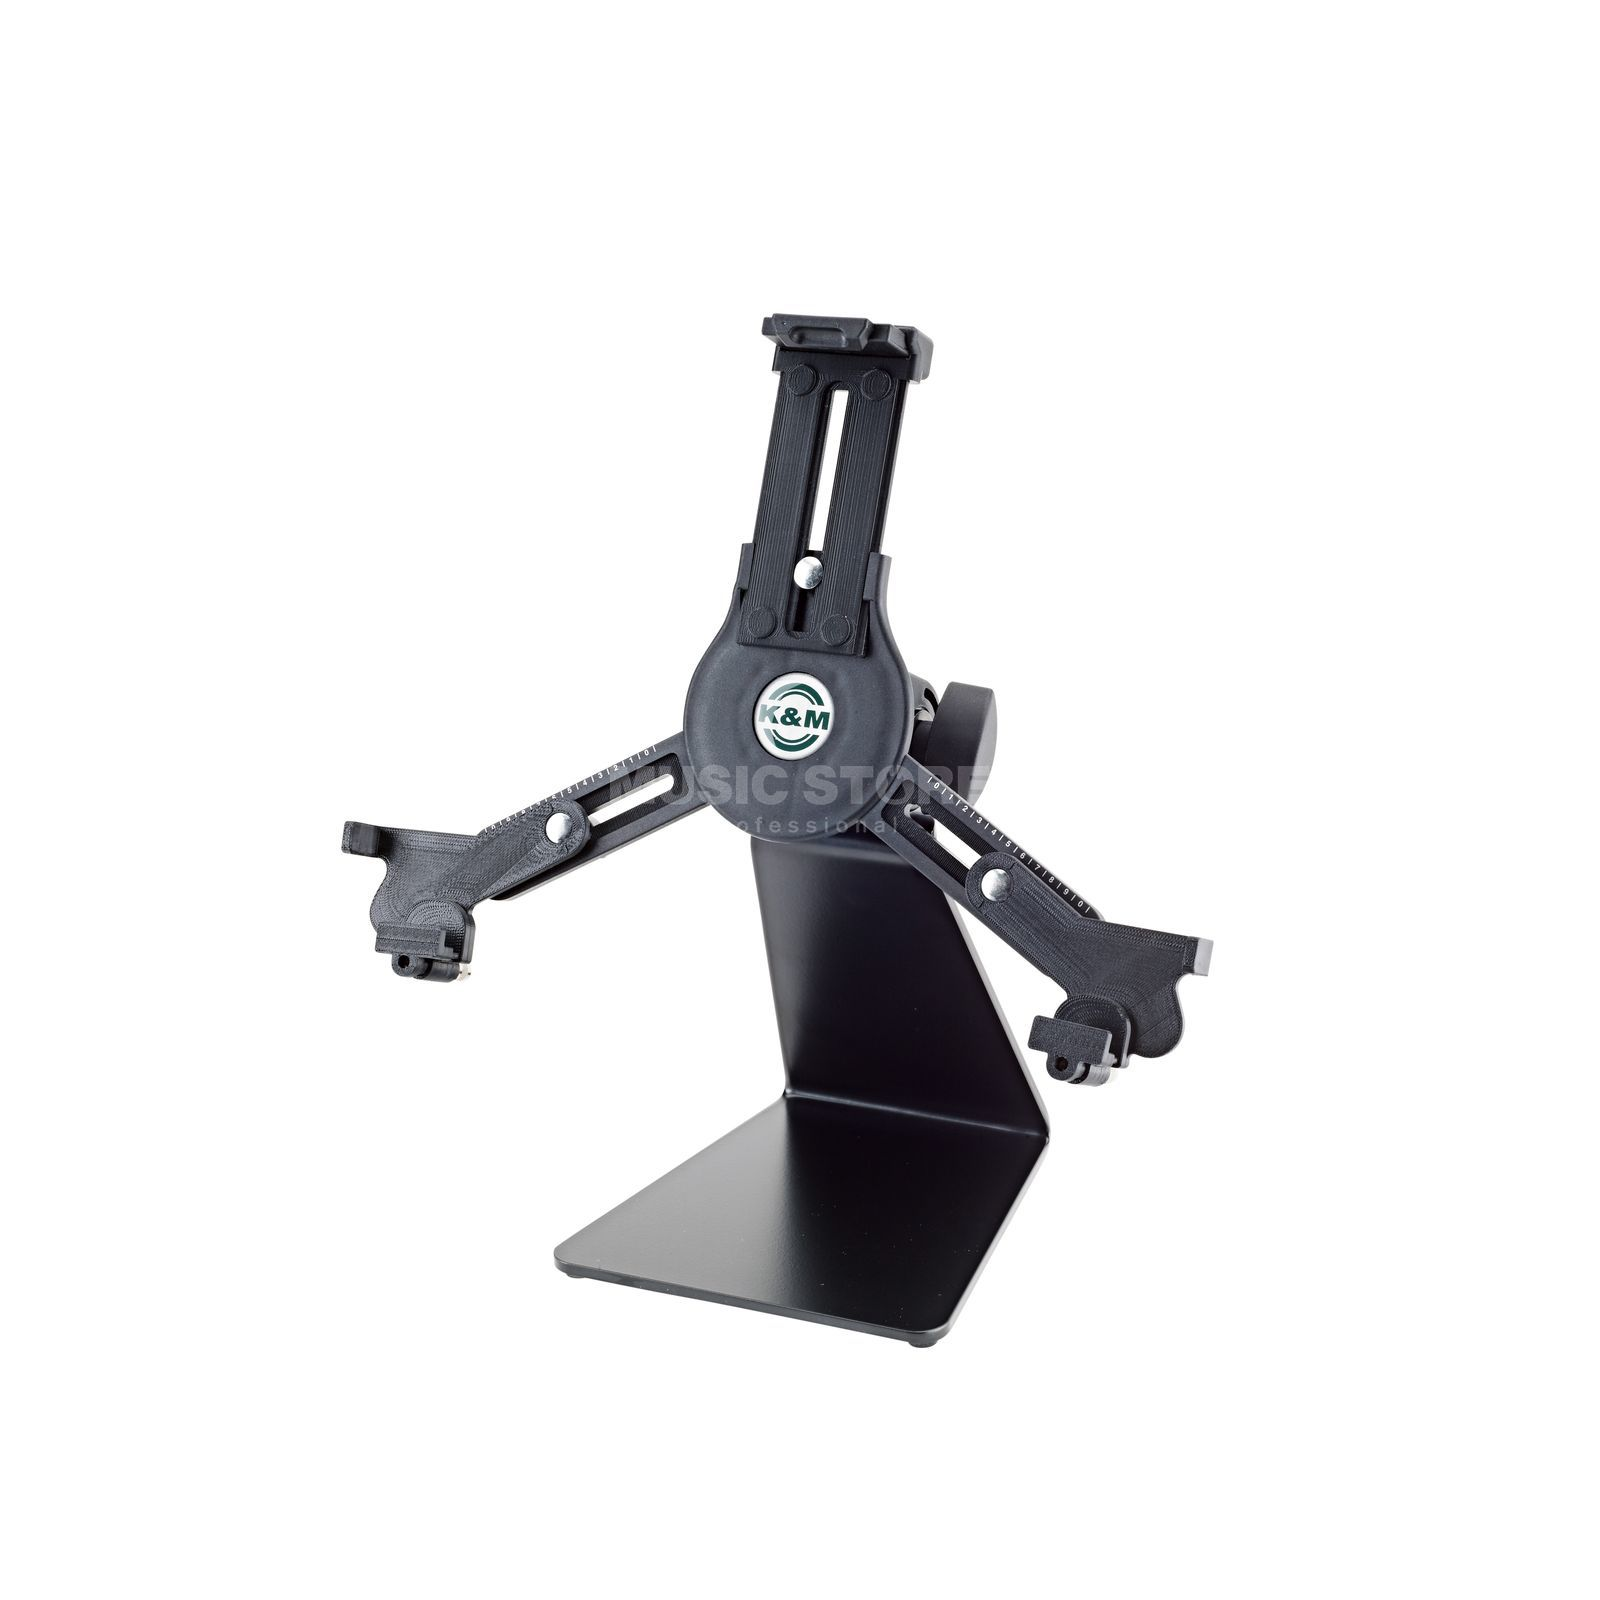 König & Meyer 19792 Tablet PC table stand - black Produktbillede